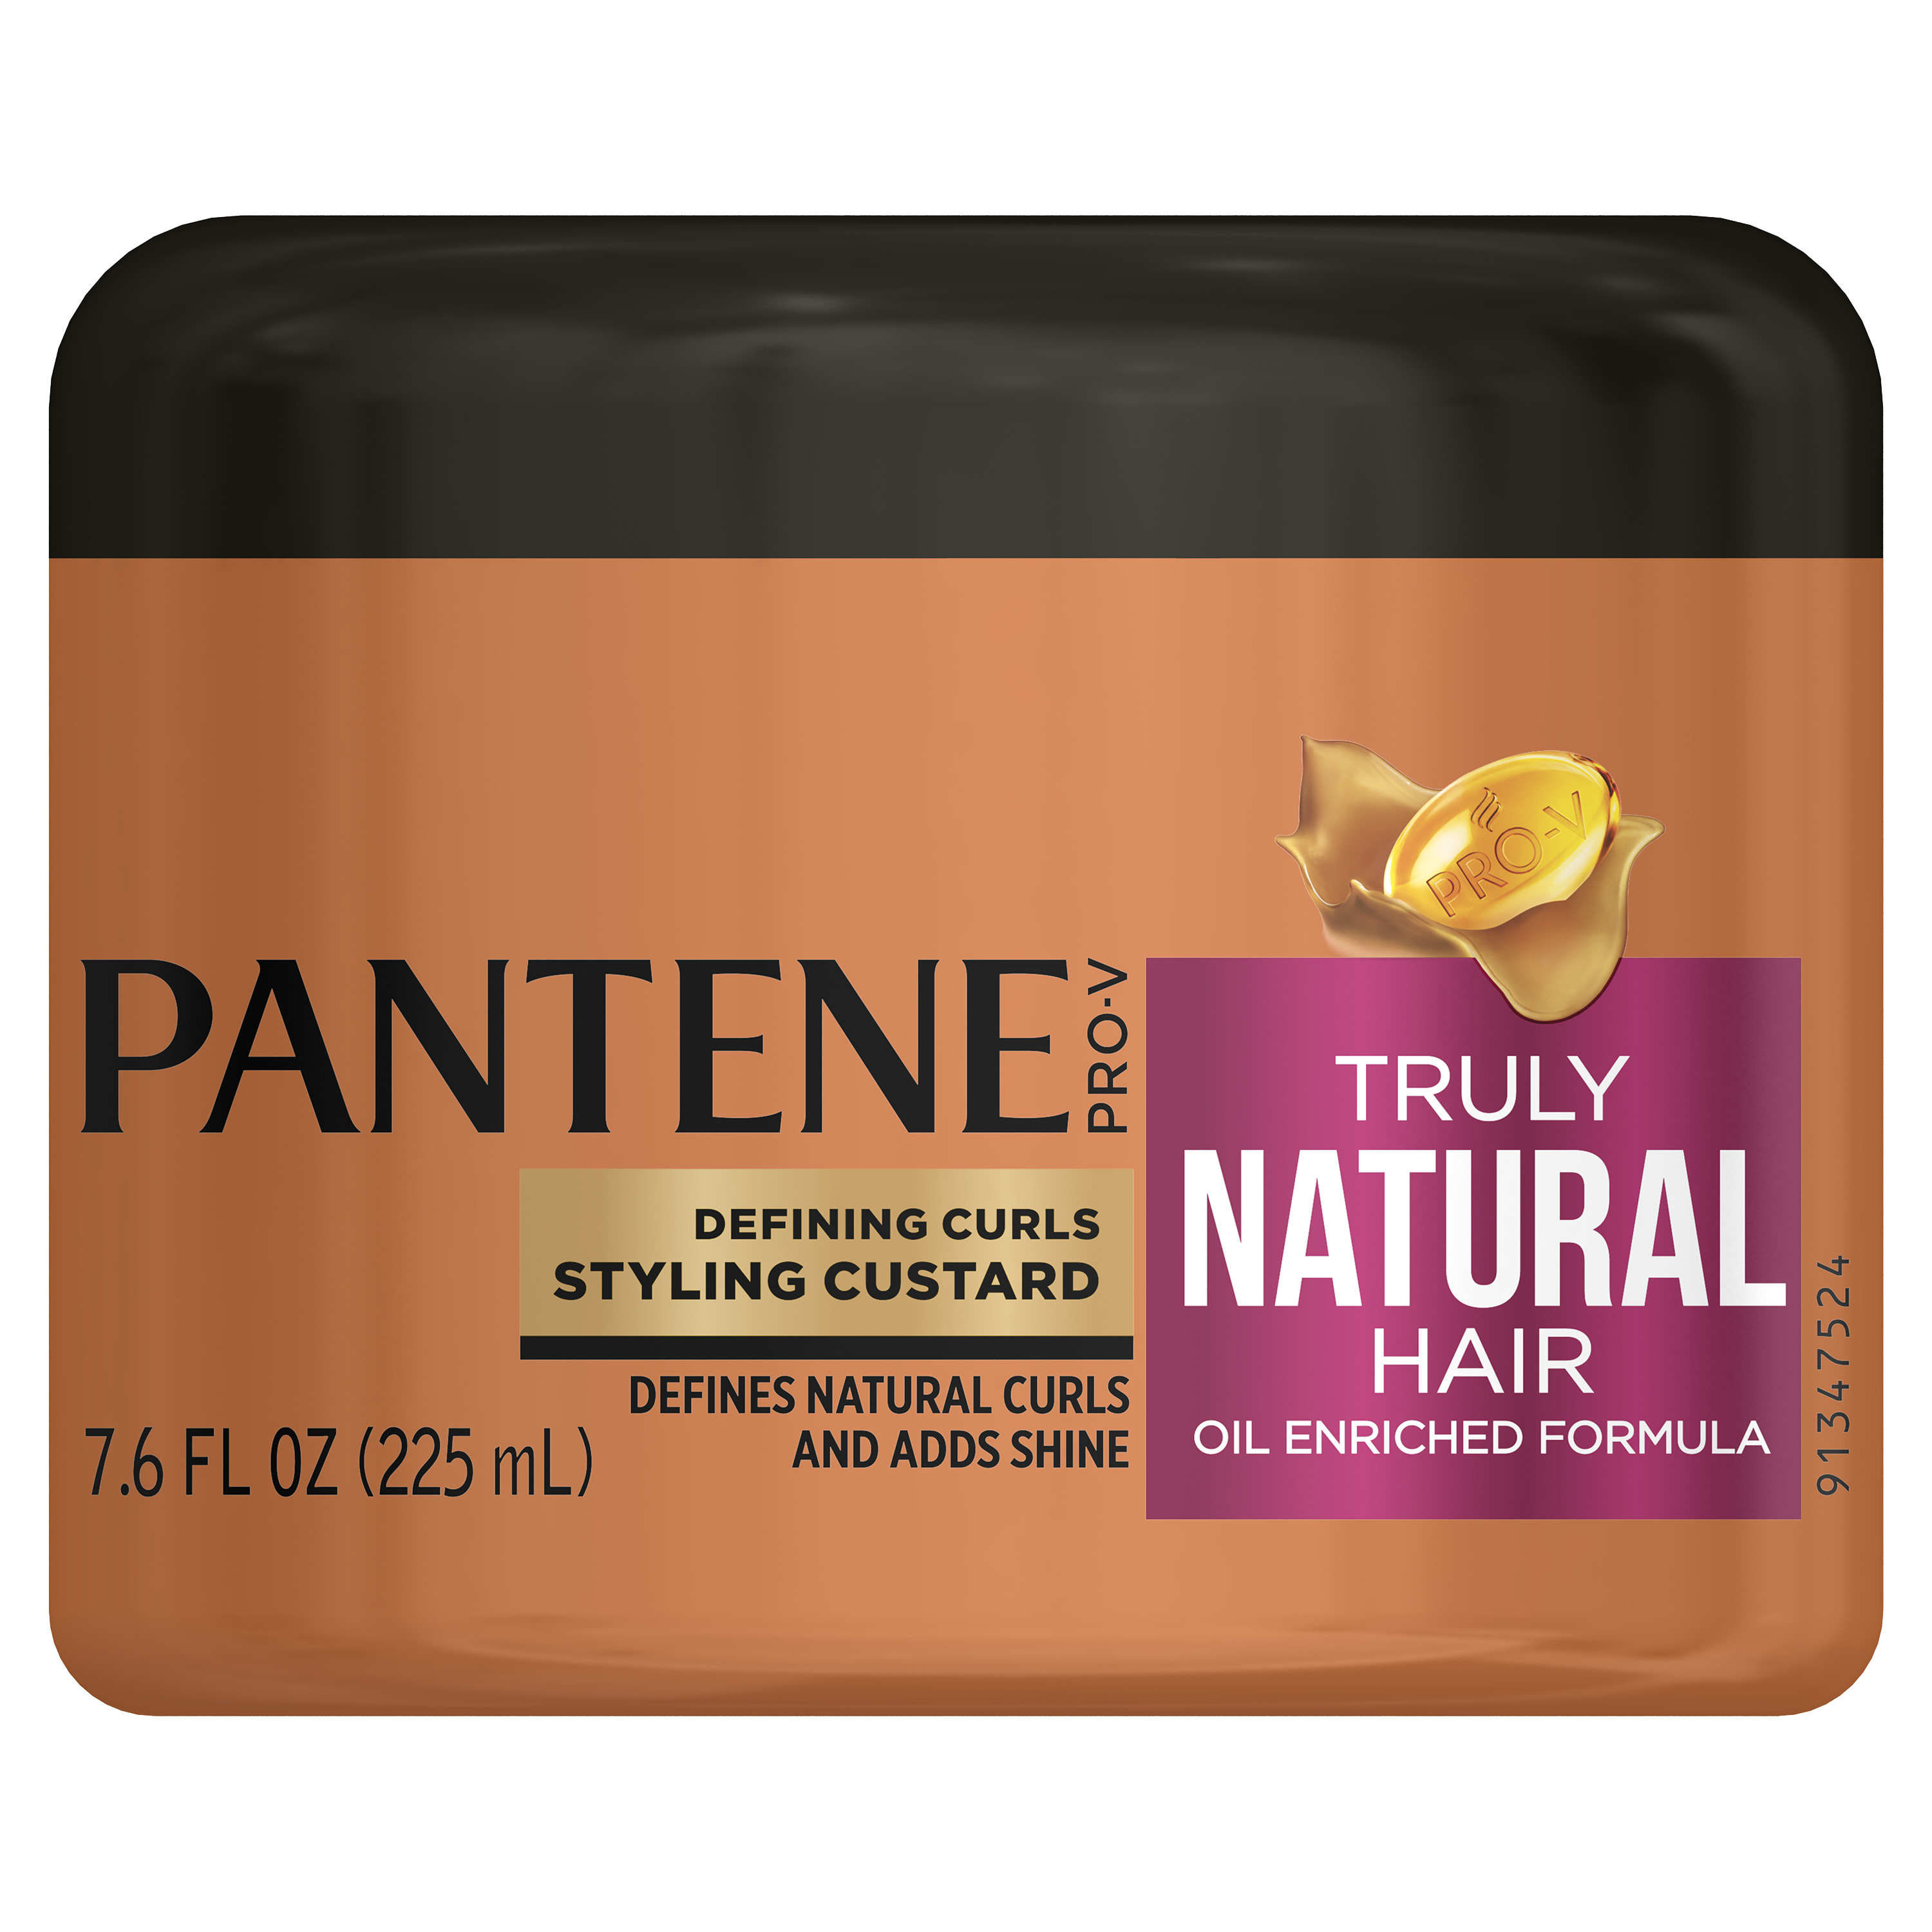 Pantene Pro-V Truly Natural Hair Defining Curls Styling Custard, 7.6 Fl Oz